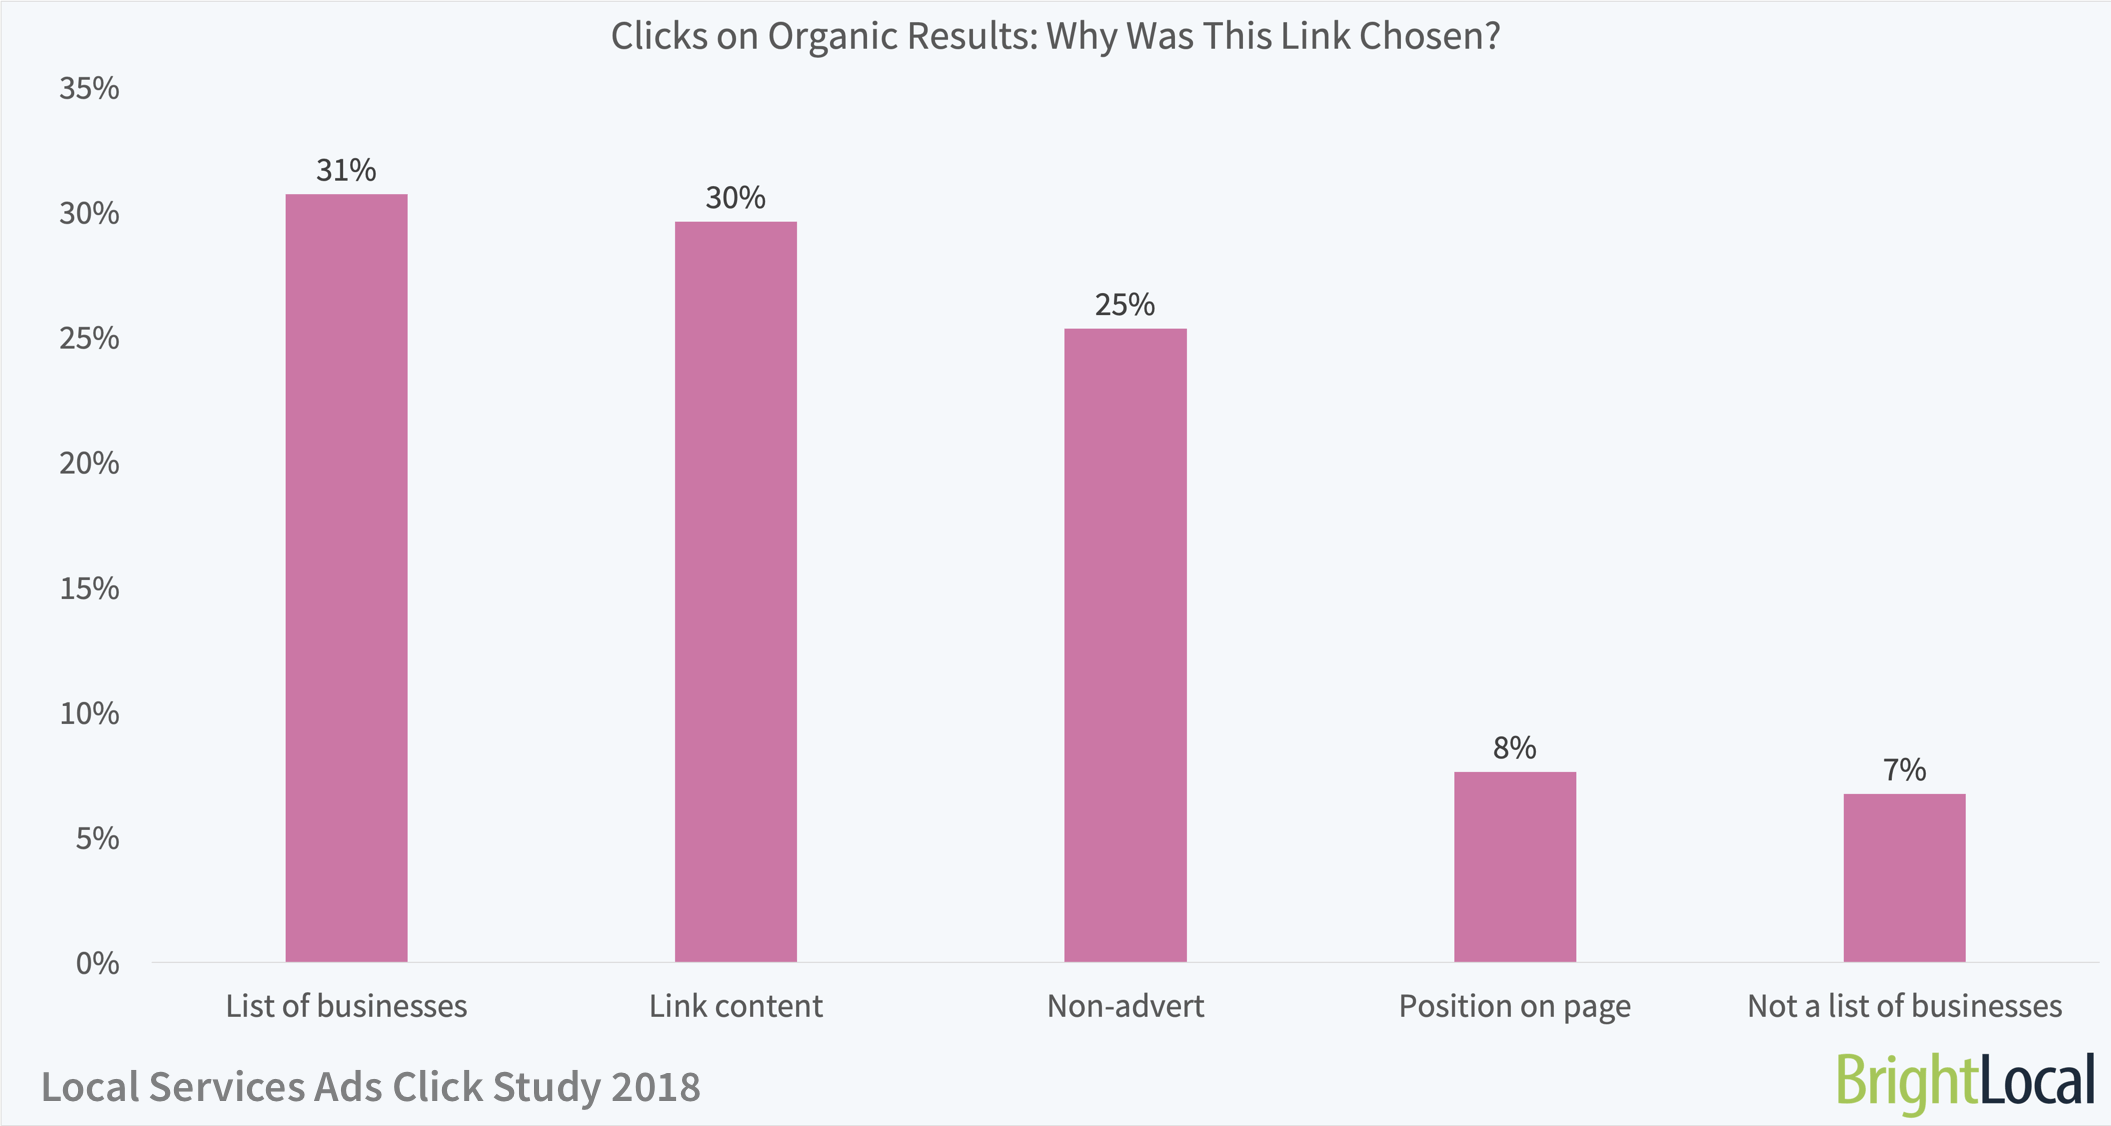 Local Services Ads Click Study | Reasons for Organic SERP Clicks